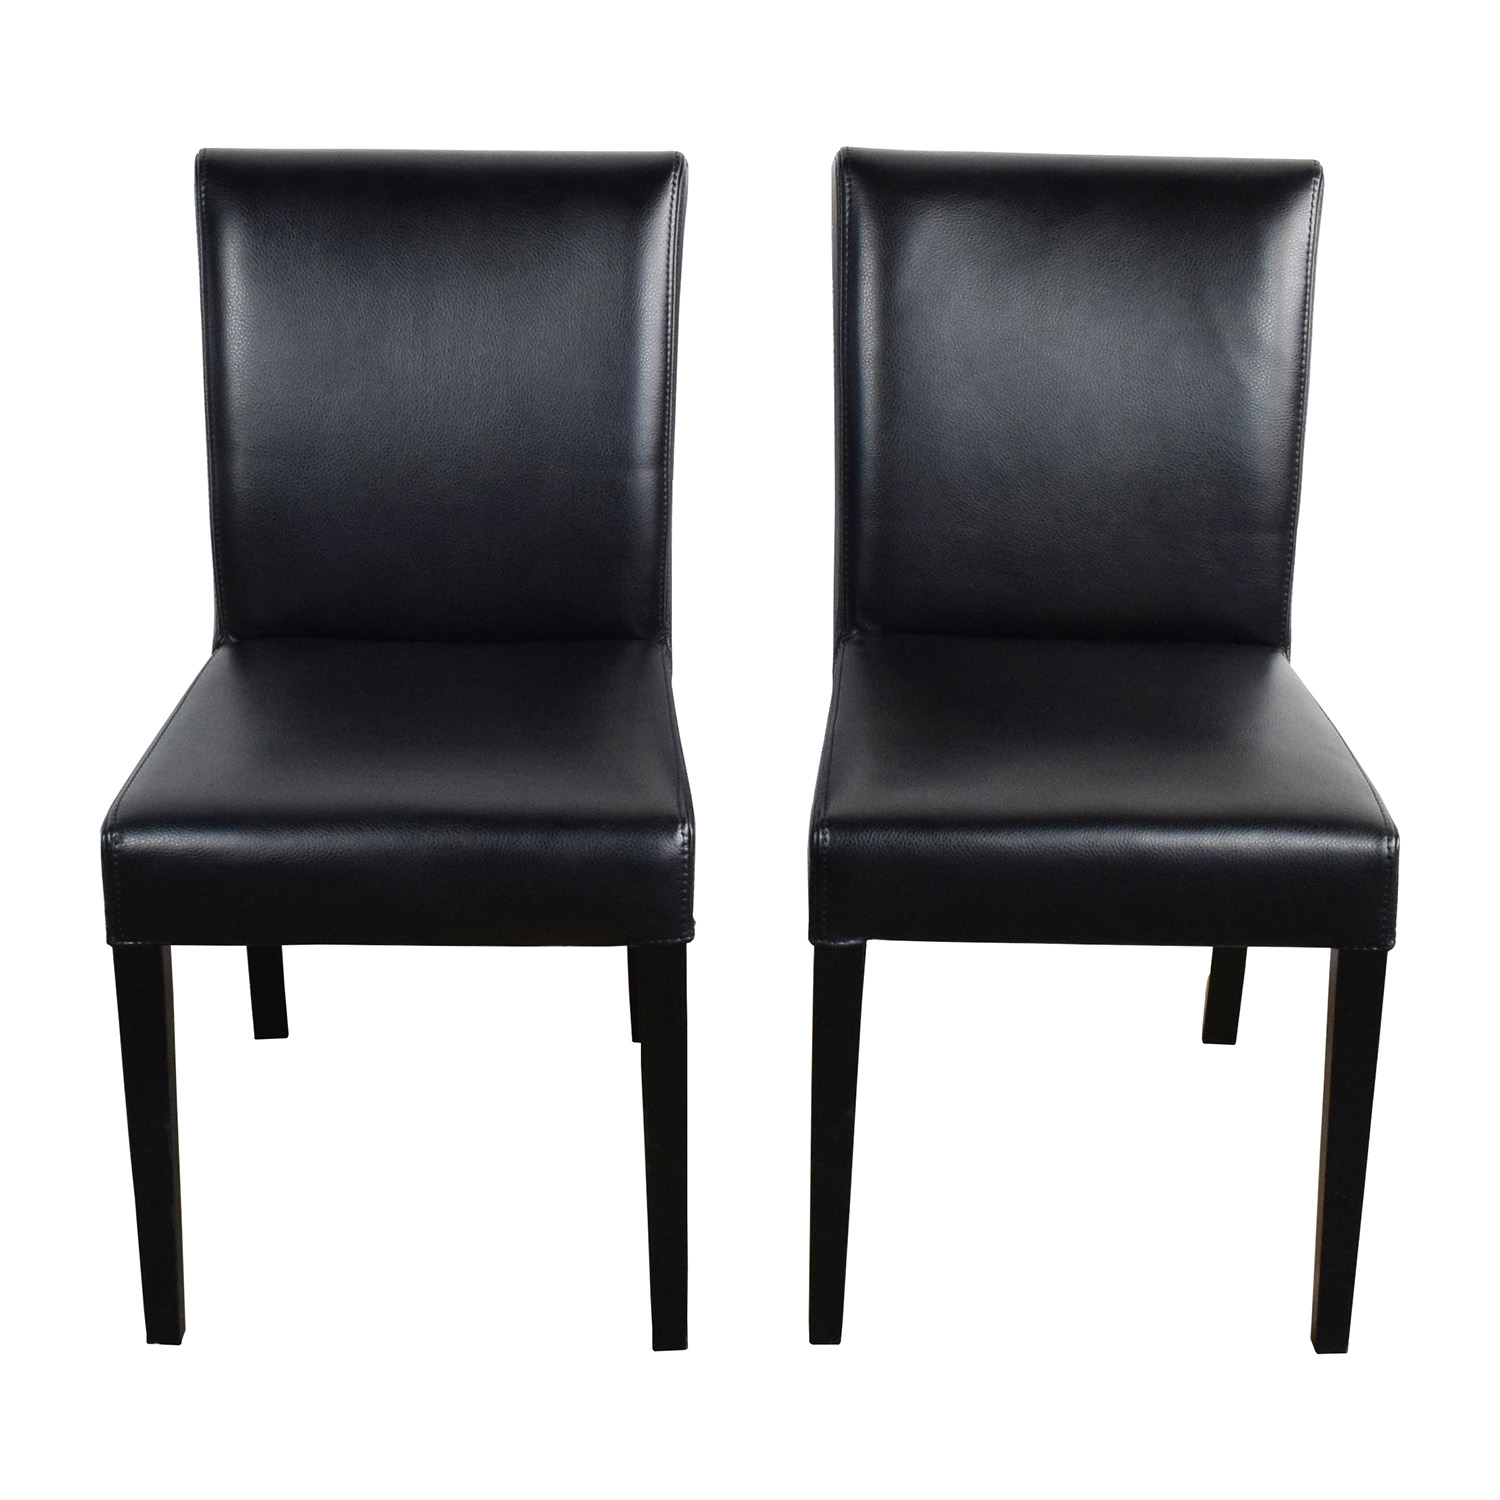 Crate and Barrel Crate & Barrel Lowe Onyx Black Leather Chairs on sale